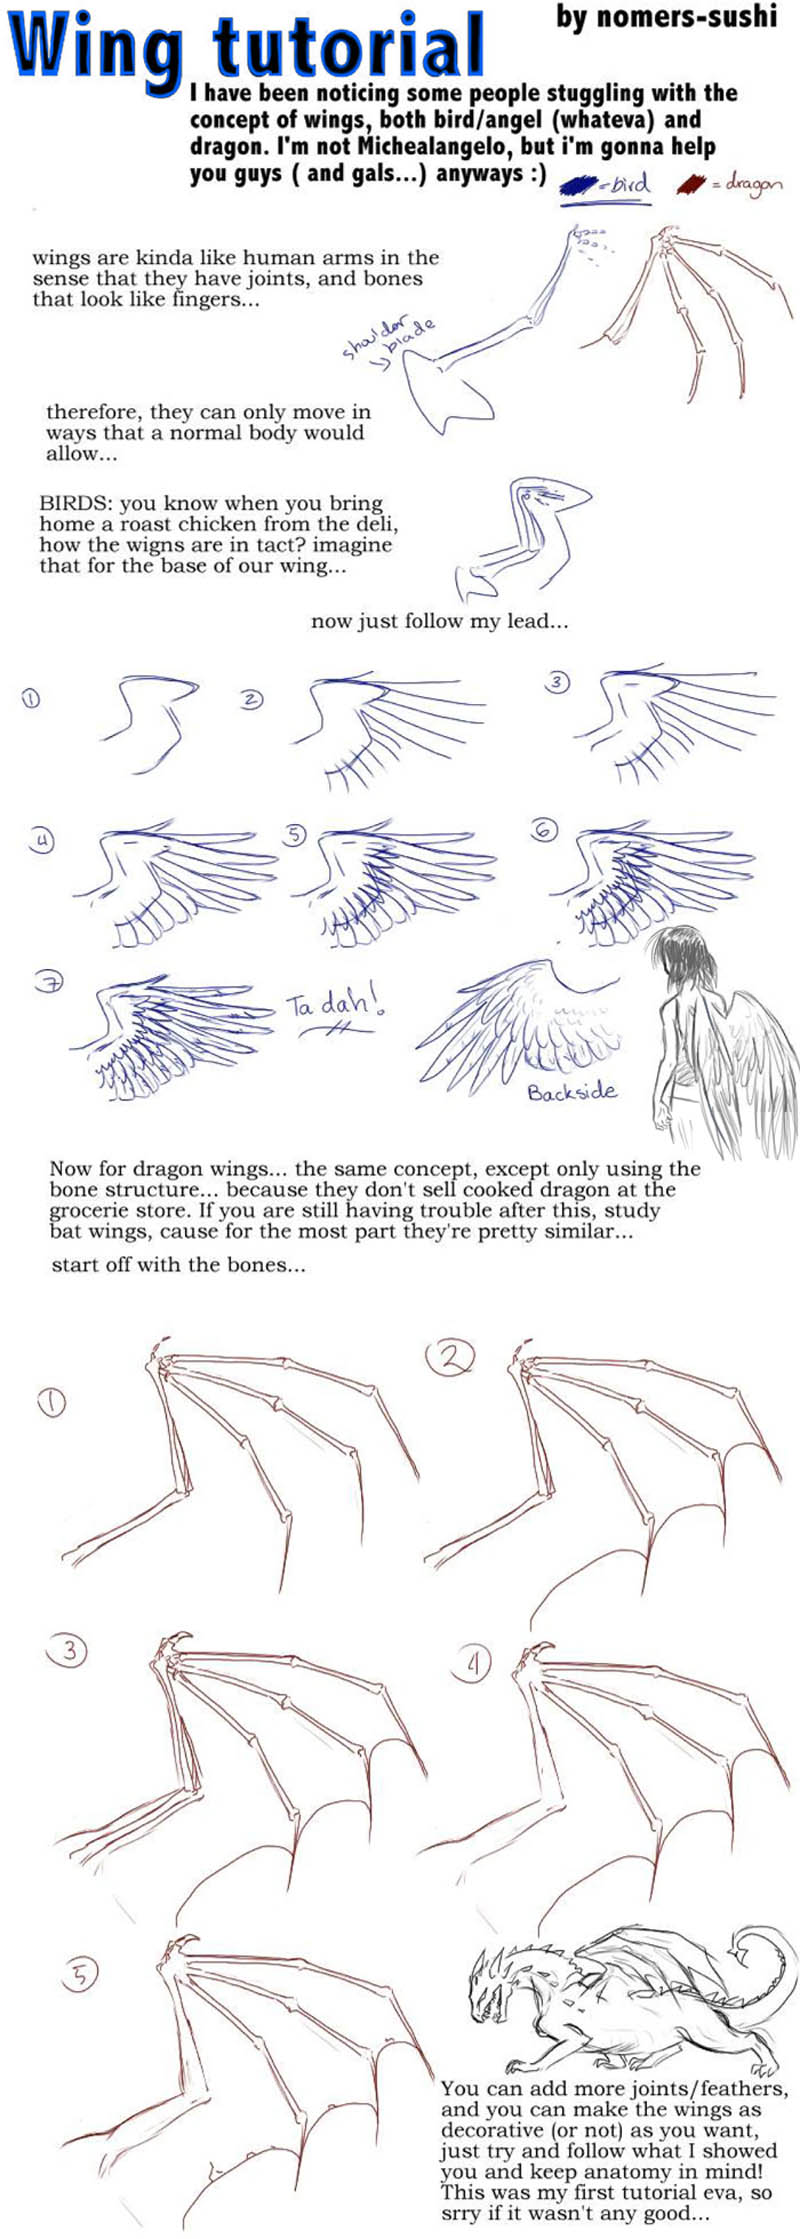 wings tutorial ftw by nomers-sushi